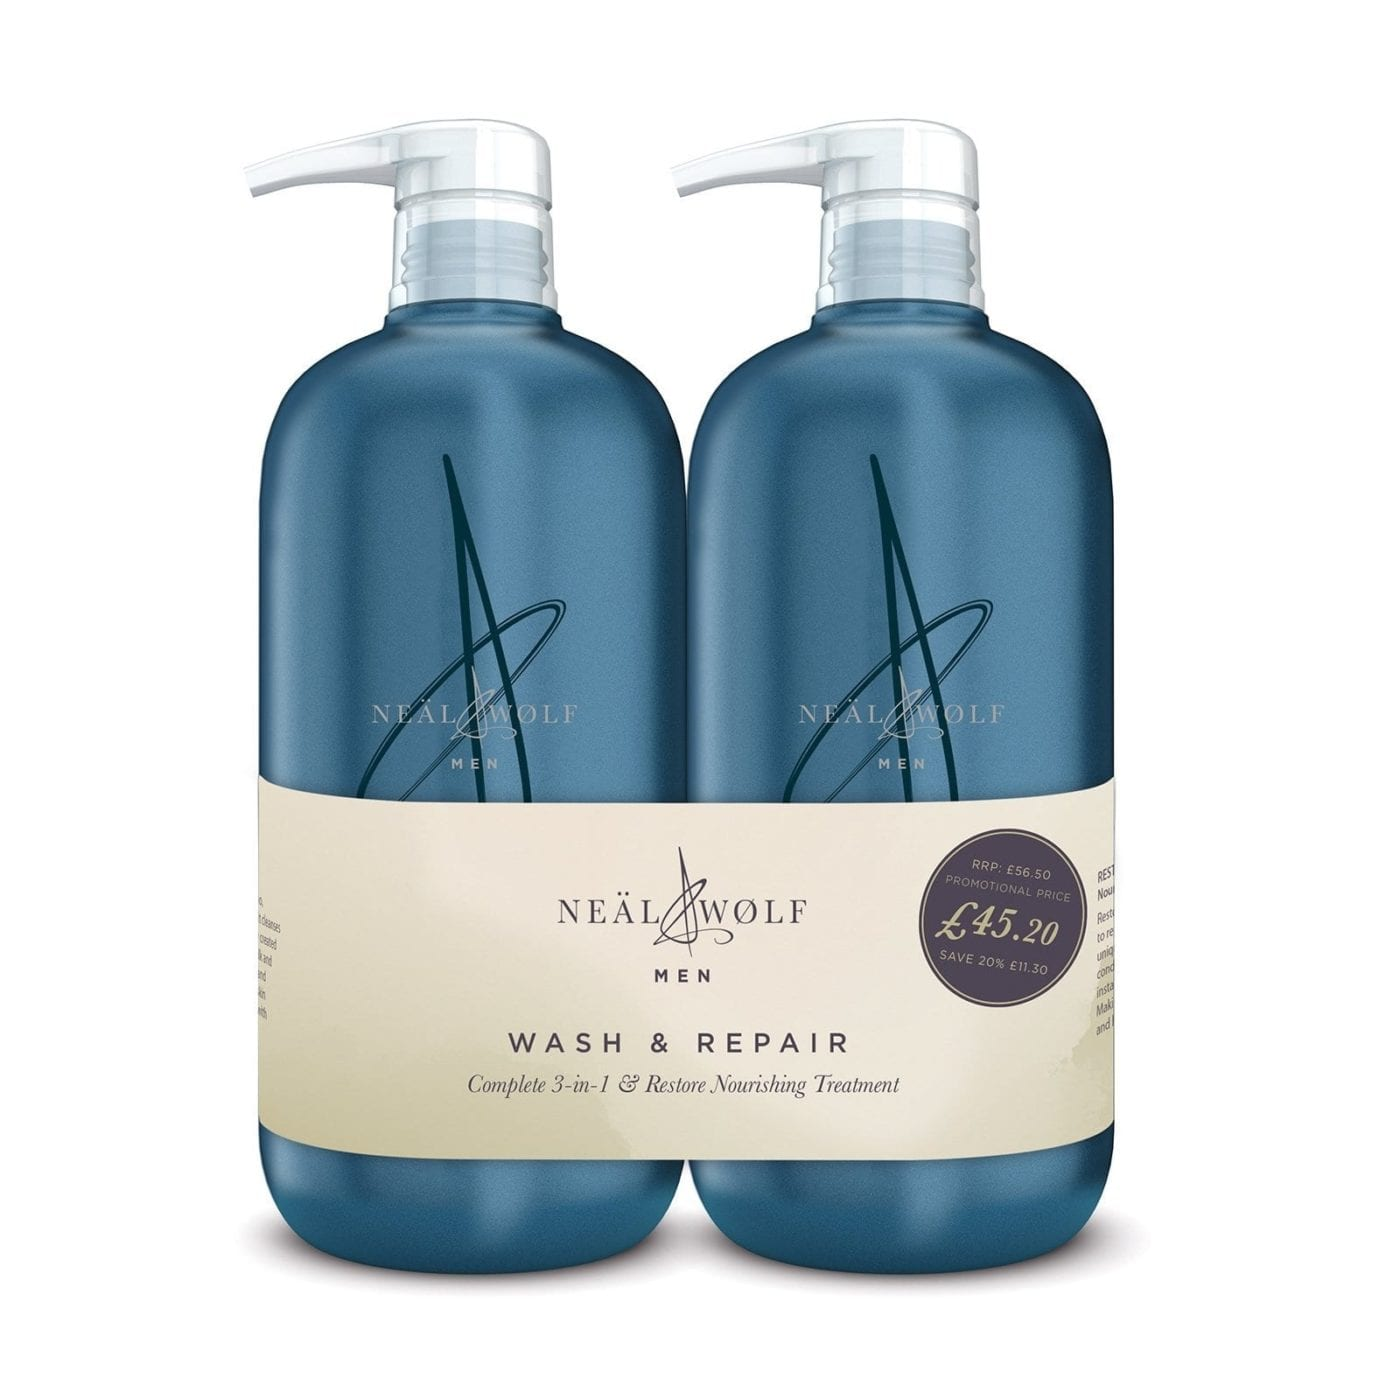 Neal And Wolf Wash And Repair Backwash Duo